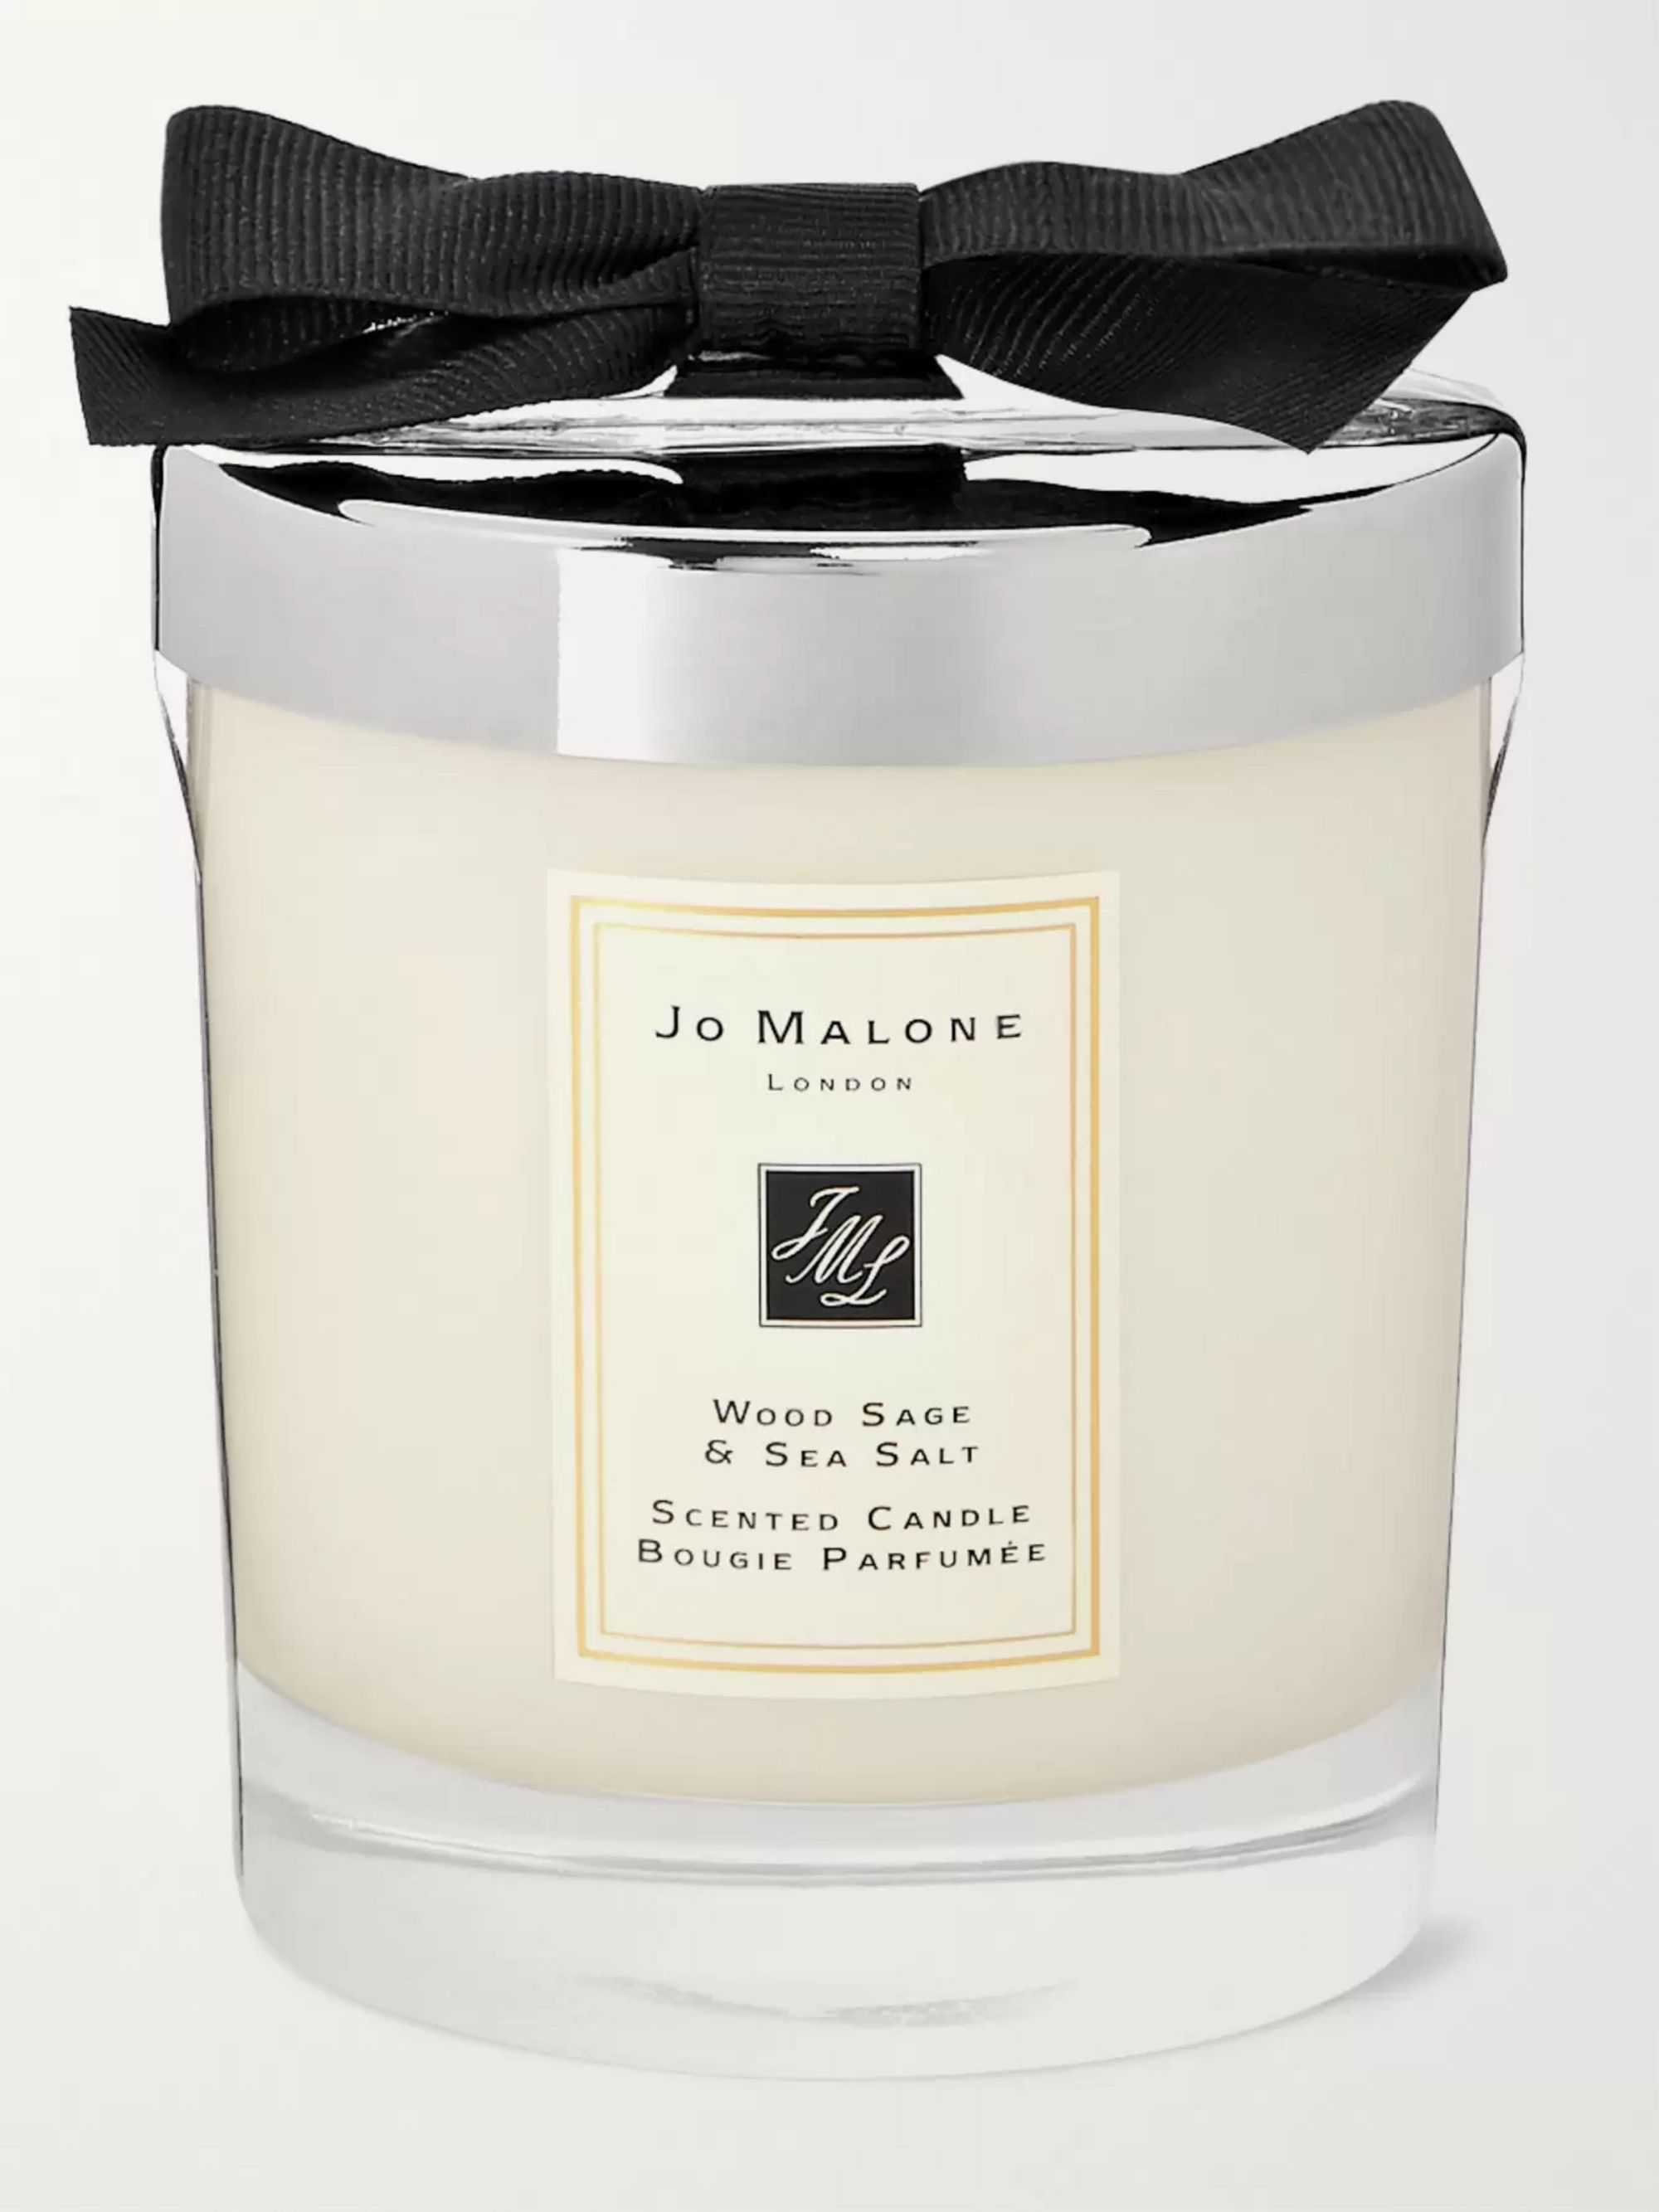 Jo Malone London Wood Sage & Sea Salt Scented Candle, 200g